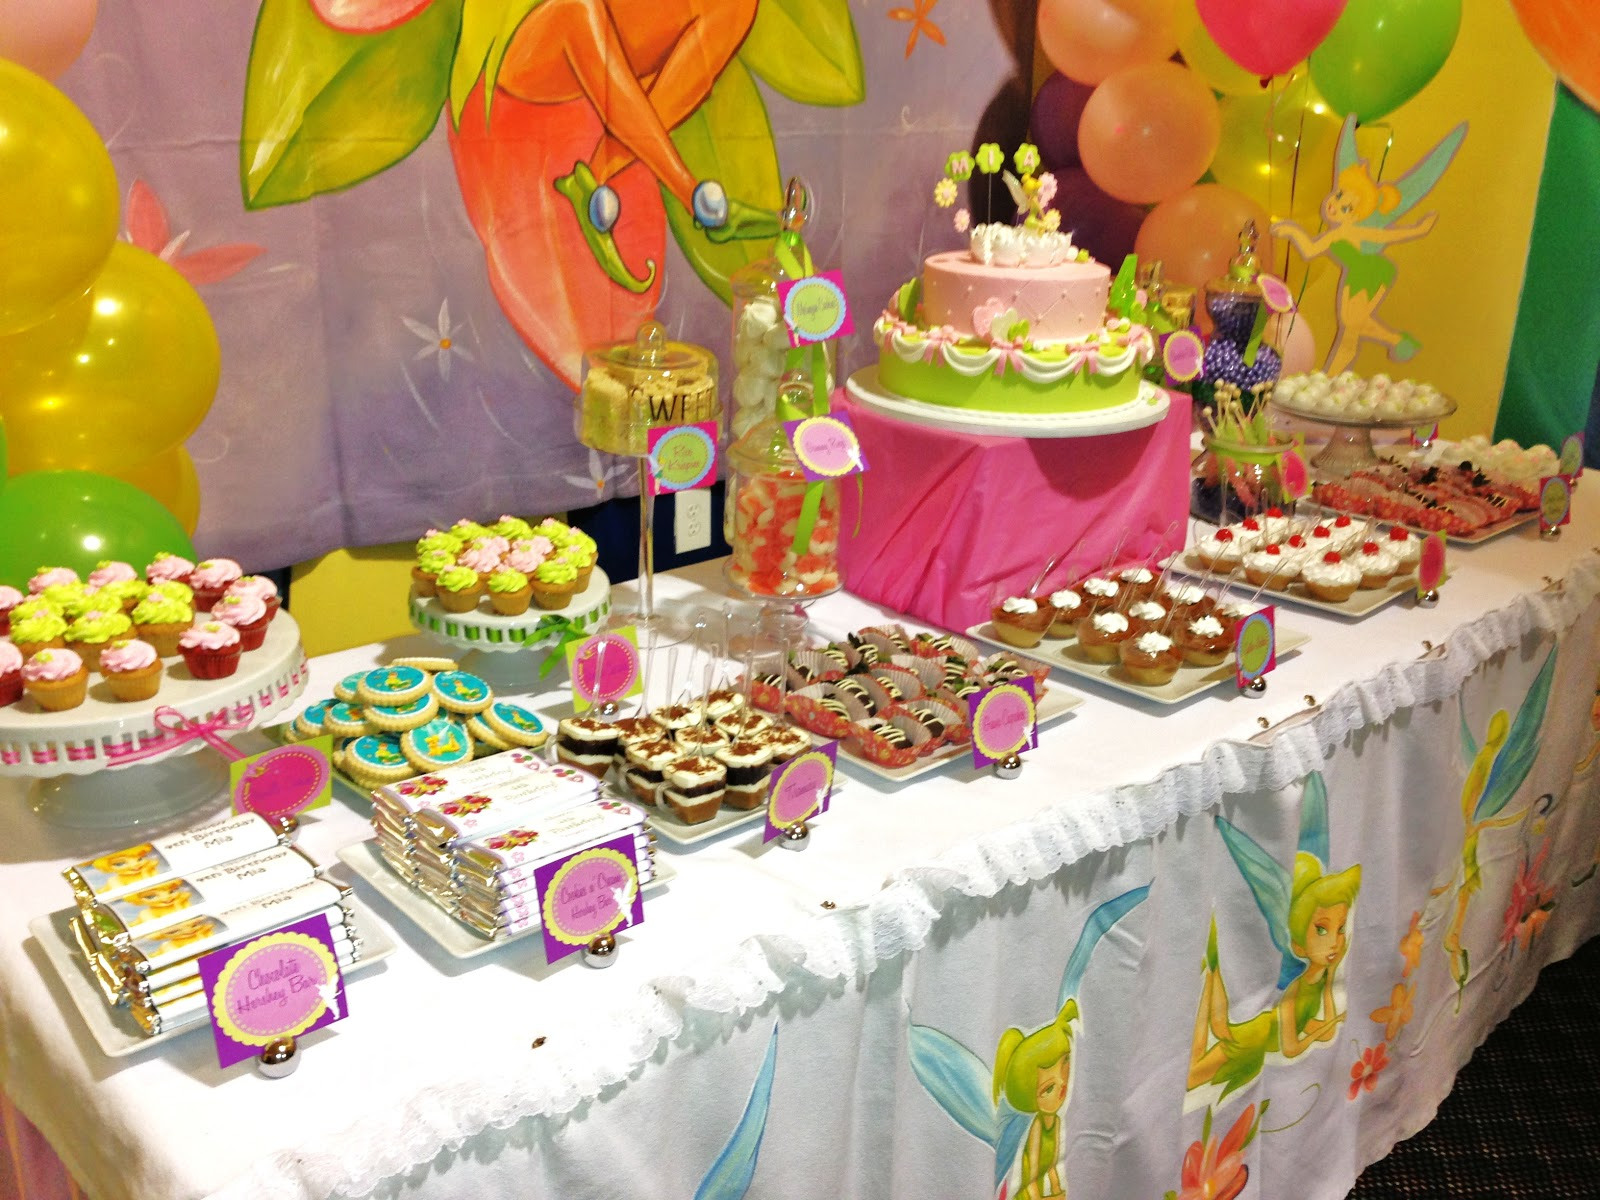 Sweet Treats Table Sign 16in x 8 1/4in | Party City Canada |Sweet Treats Party Table